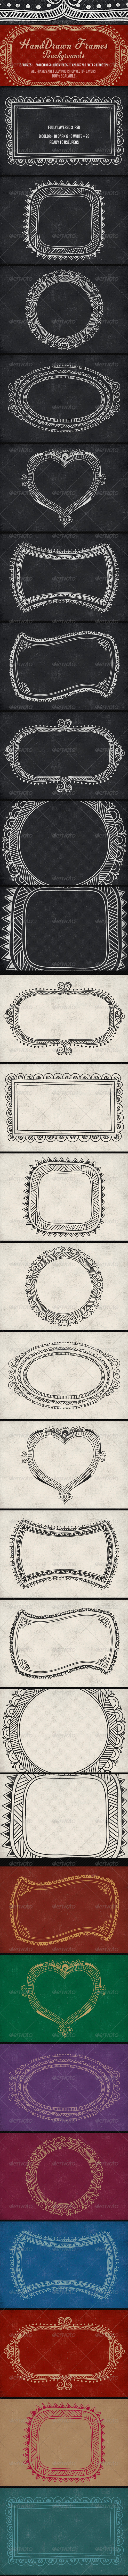 GraphicRiver Hand Drawn Frames Backgrounds 8279083